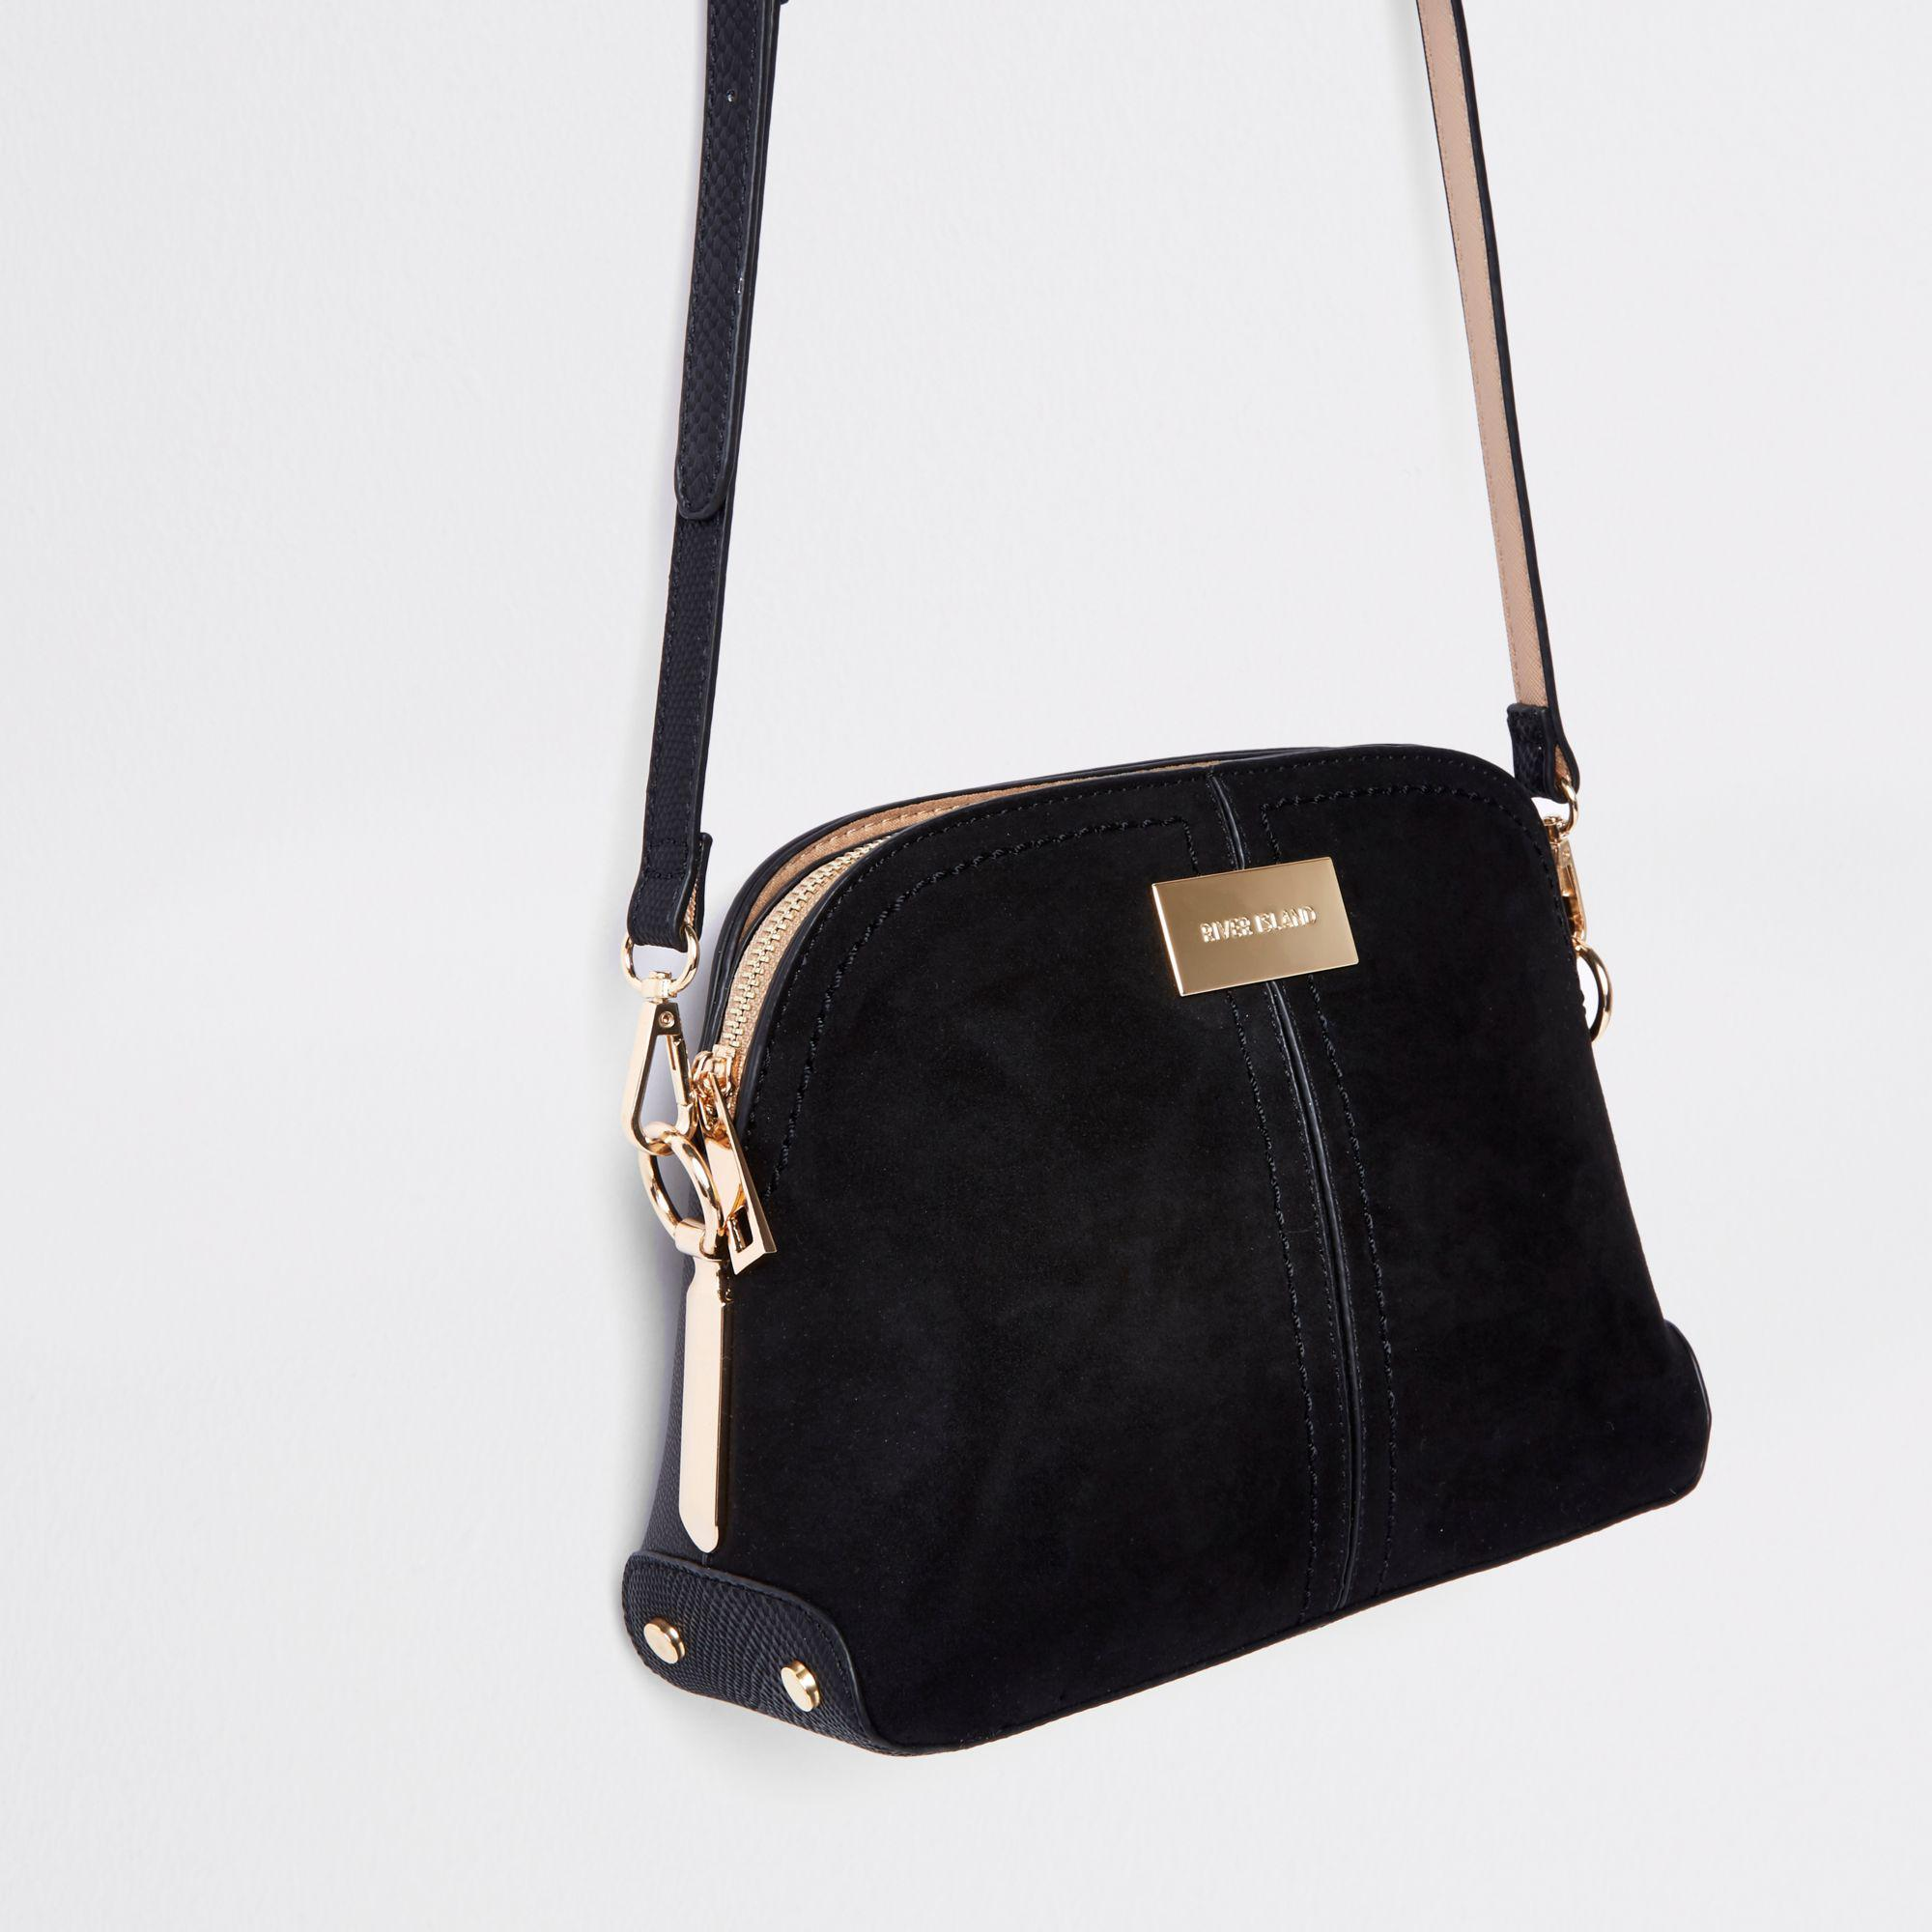 8aeb6432c River Island Kettle Cross Body Bag in Black - Lyst